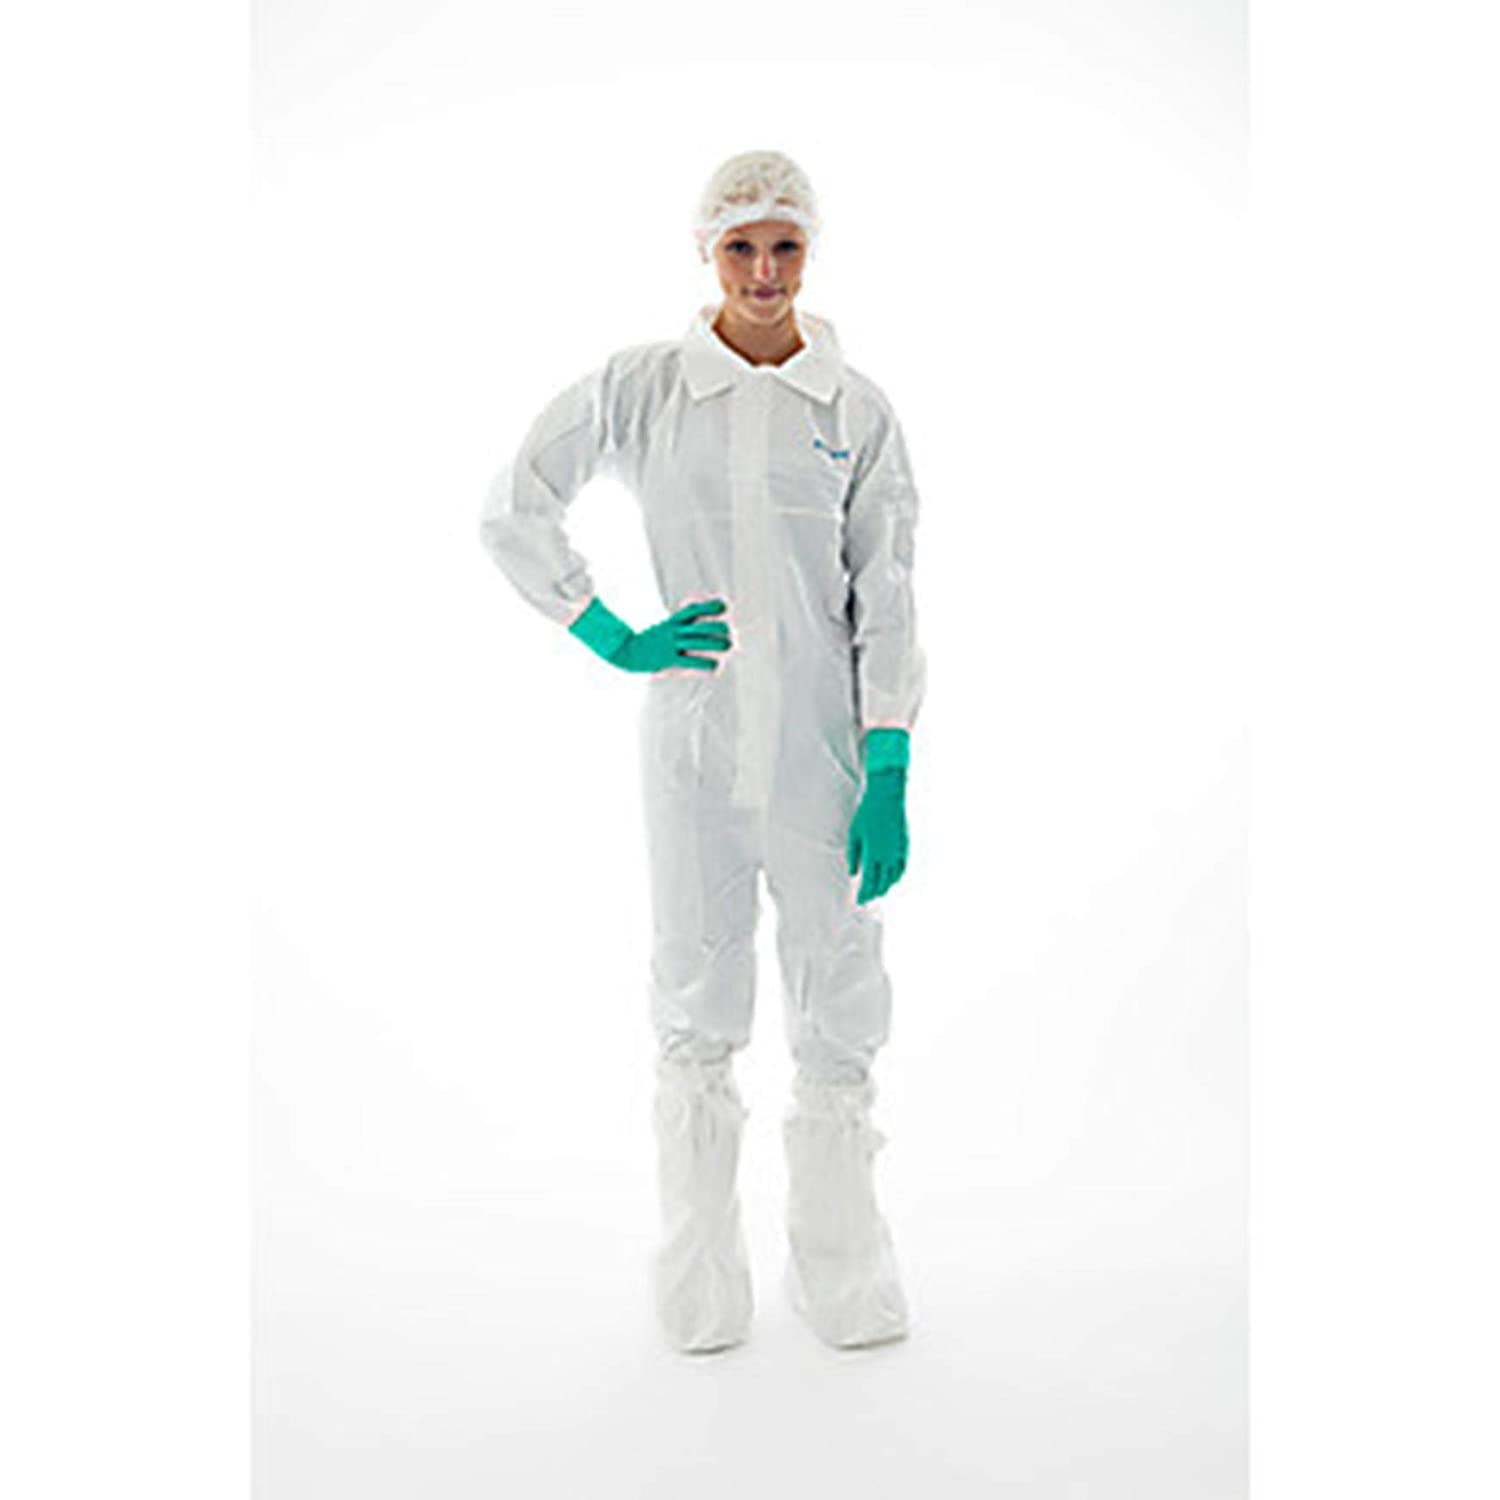 Ansell S-BDCHT-XXXL BioClean Coverall with Collar, Anti-Static, White, Sterile, 3XL (Pack of 15)